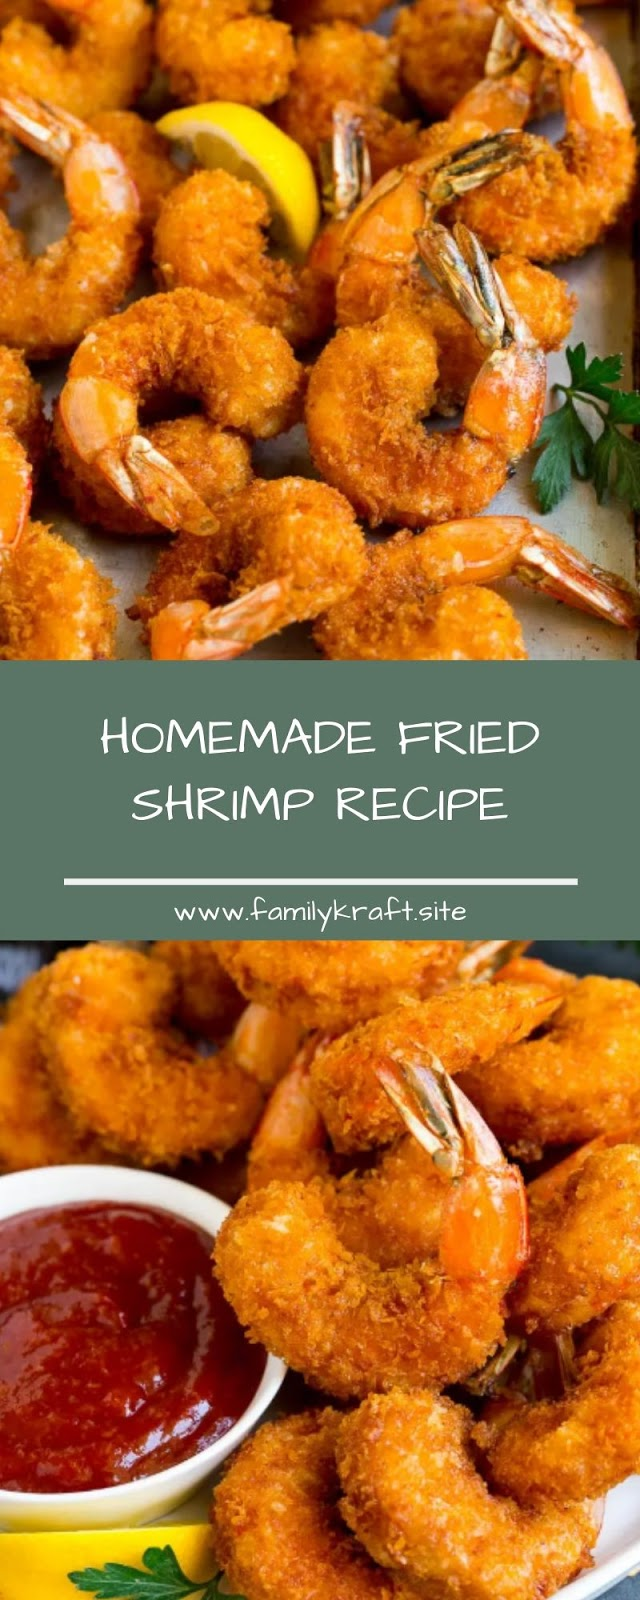 HOMEMADE FRIED SHRIMP RECIPE